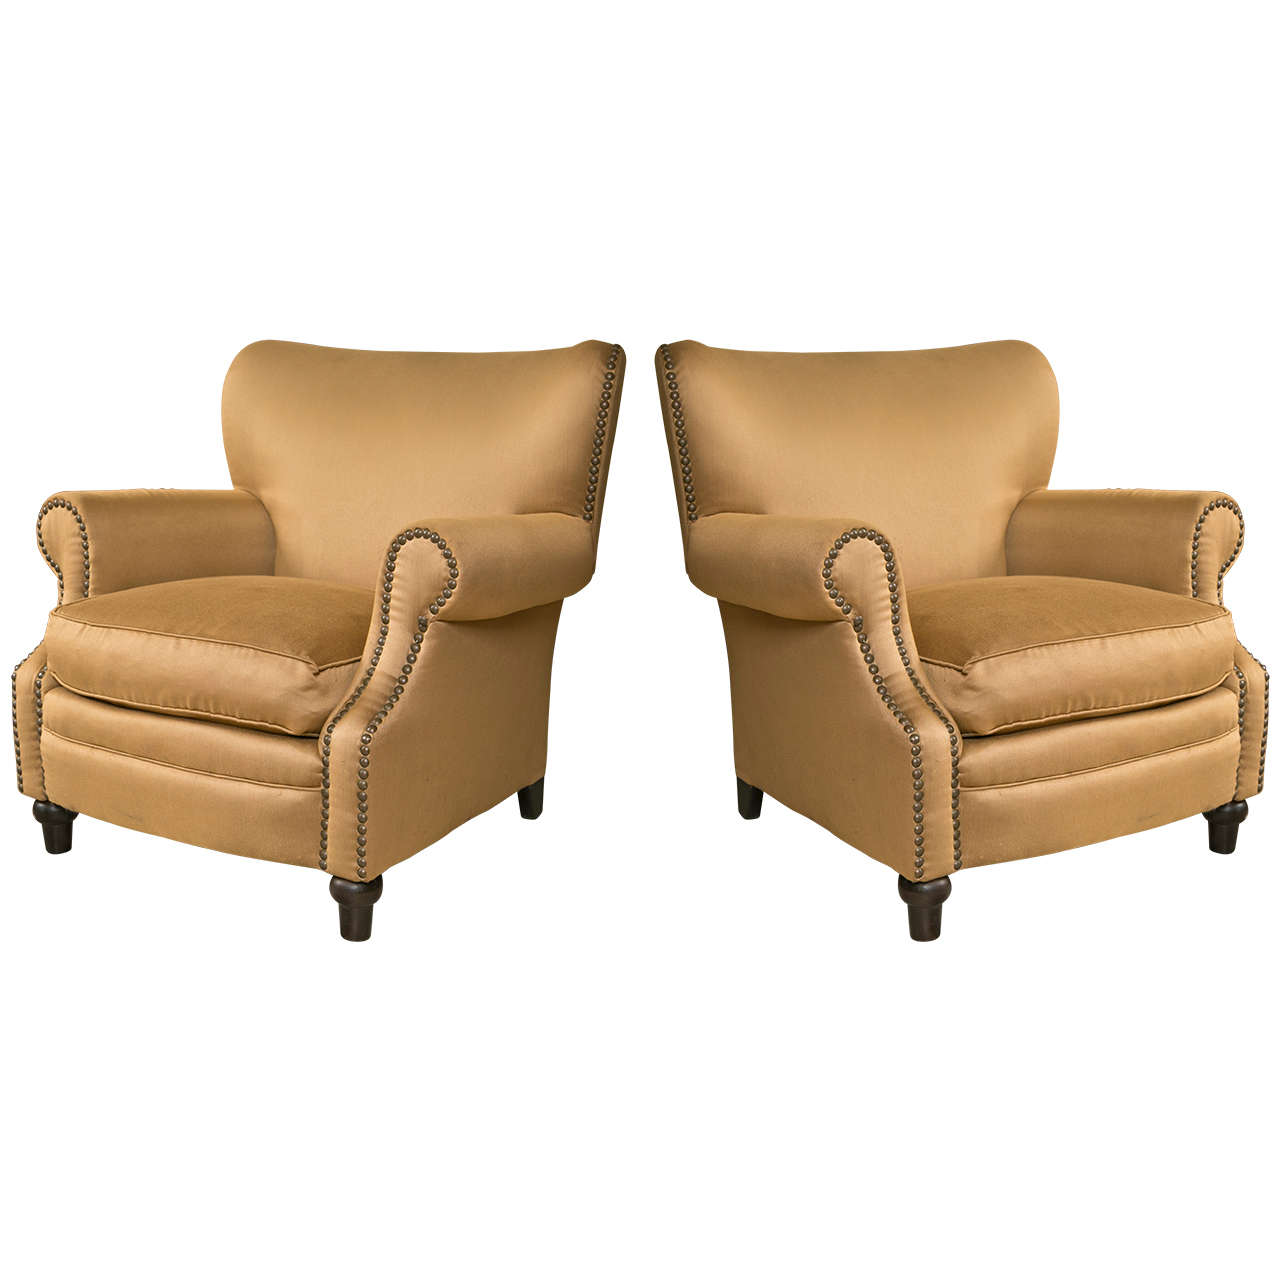 Pair of overstuffed oversized arm lounge chairs at 1stdibs for Large armchair